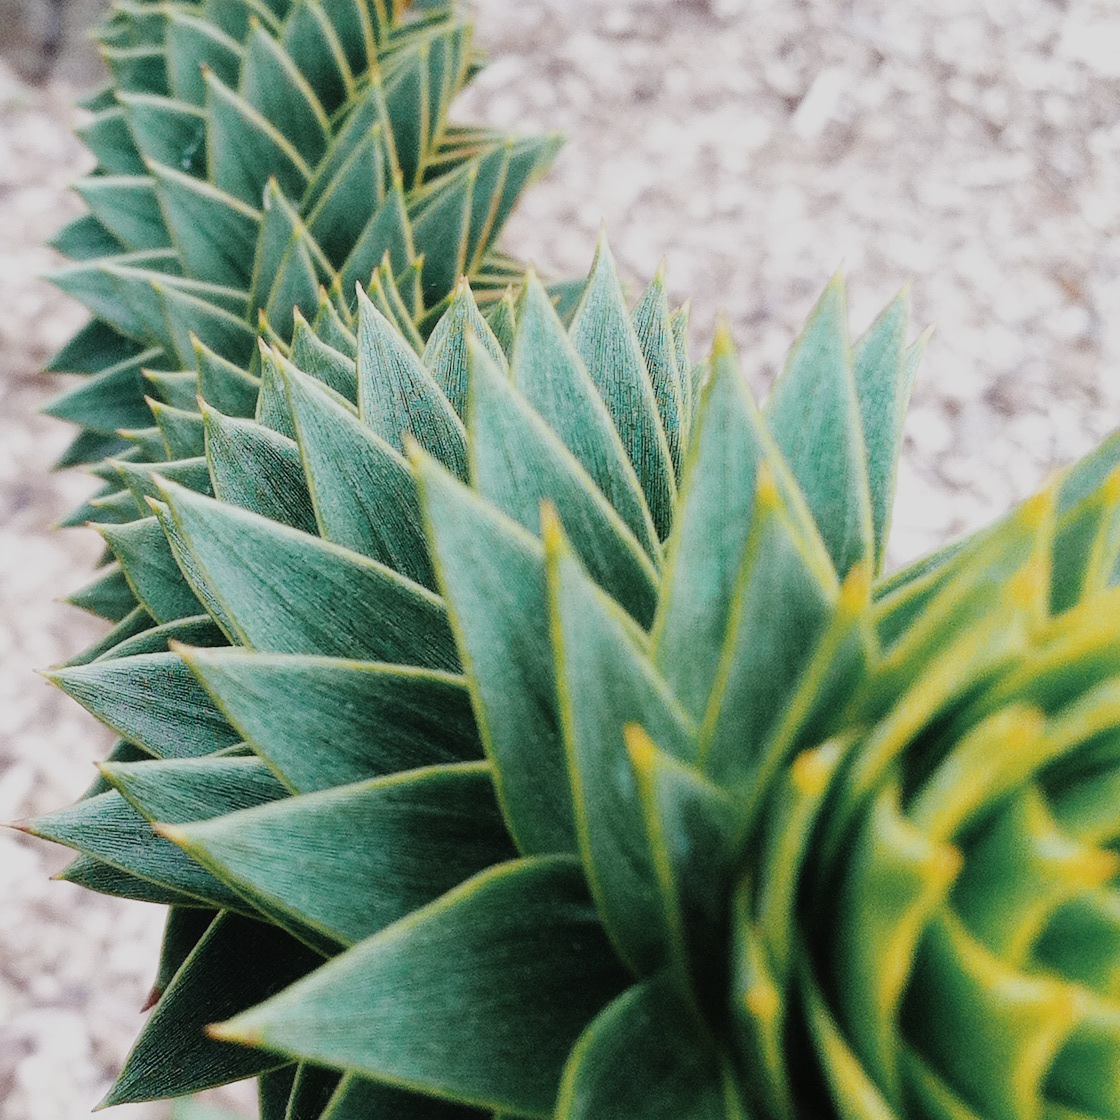 Detail of the Monkey Puzzle Tree.